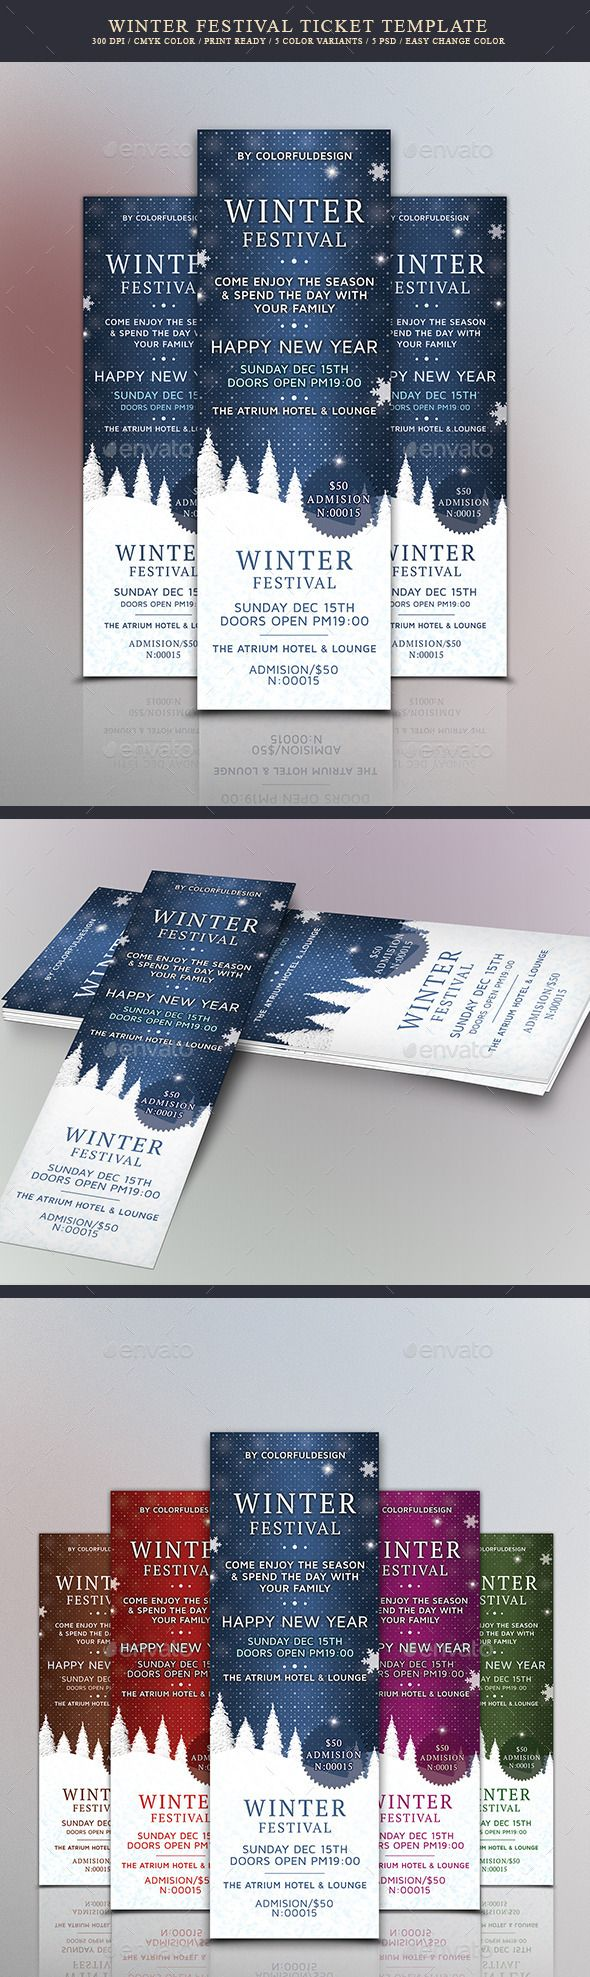 Concert Ticket Template Free Download Fair 139 Best Invitation Design Images On Pinterest  Christmas Parties .